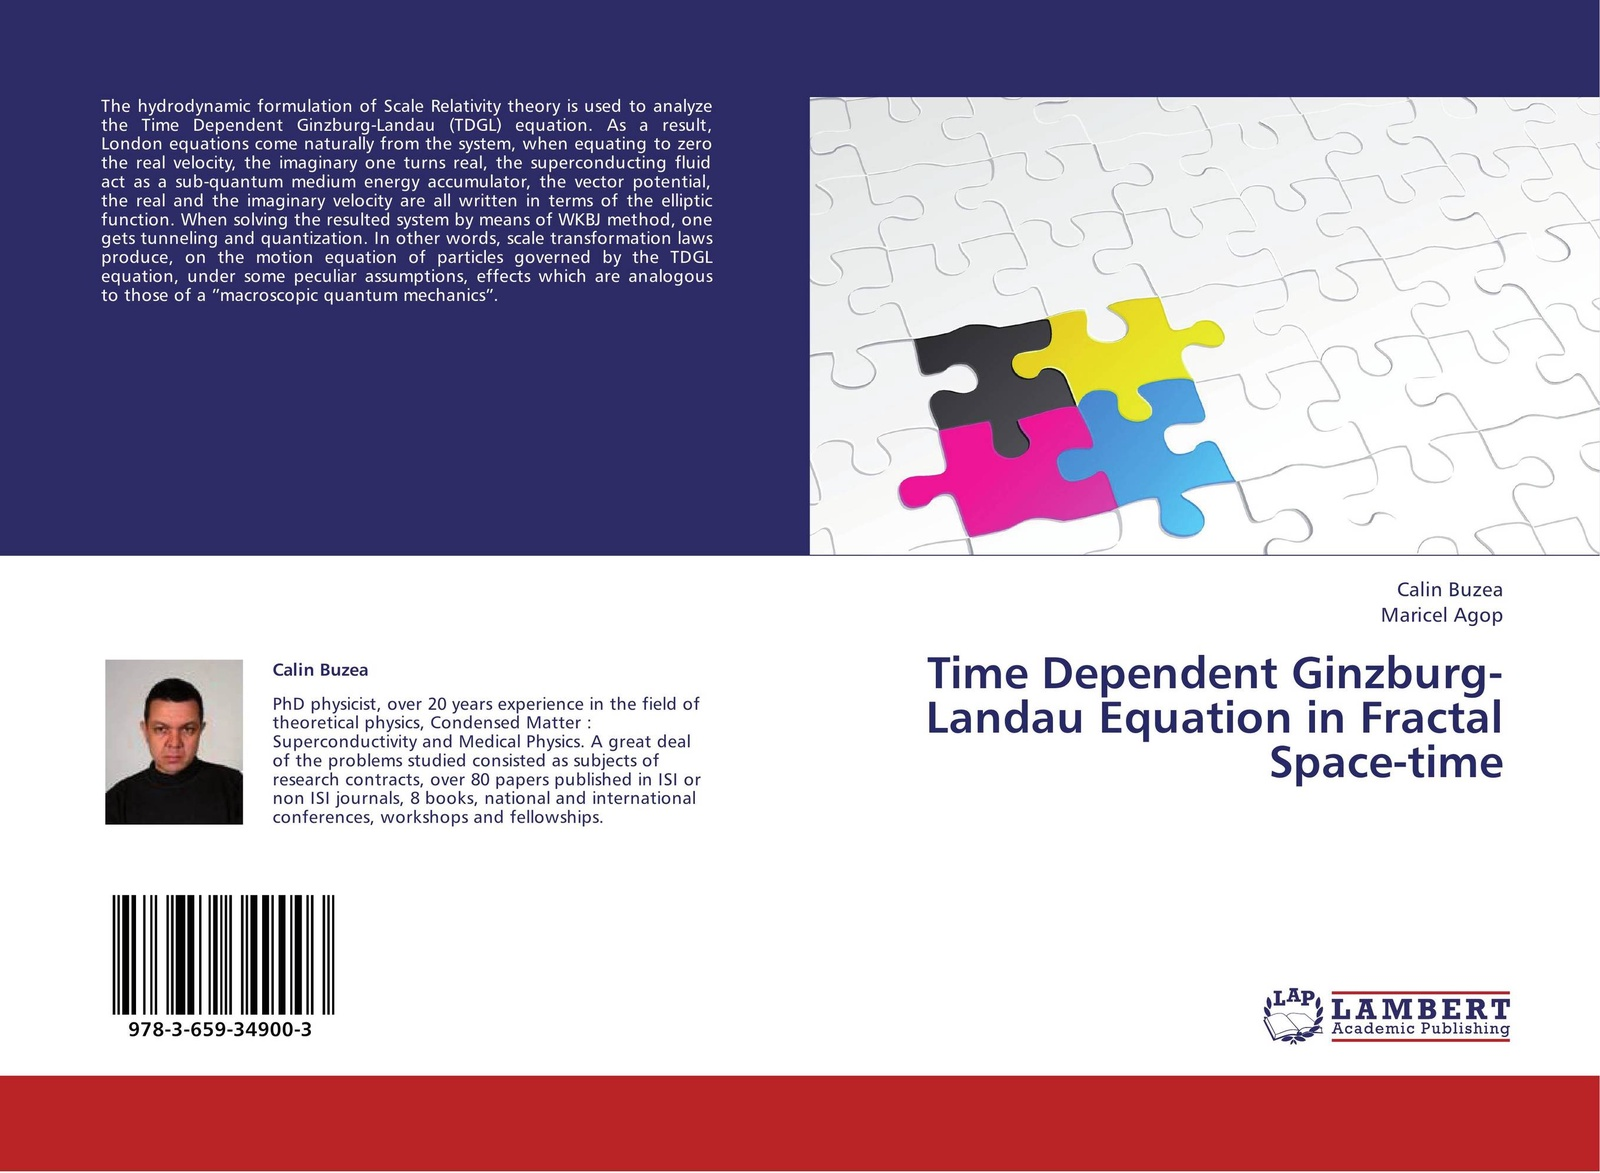 Calin Buzea and Maricel Agop Time Dependent Ginzburg-Landau Equation in Fractal Space-time